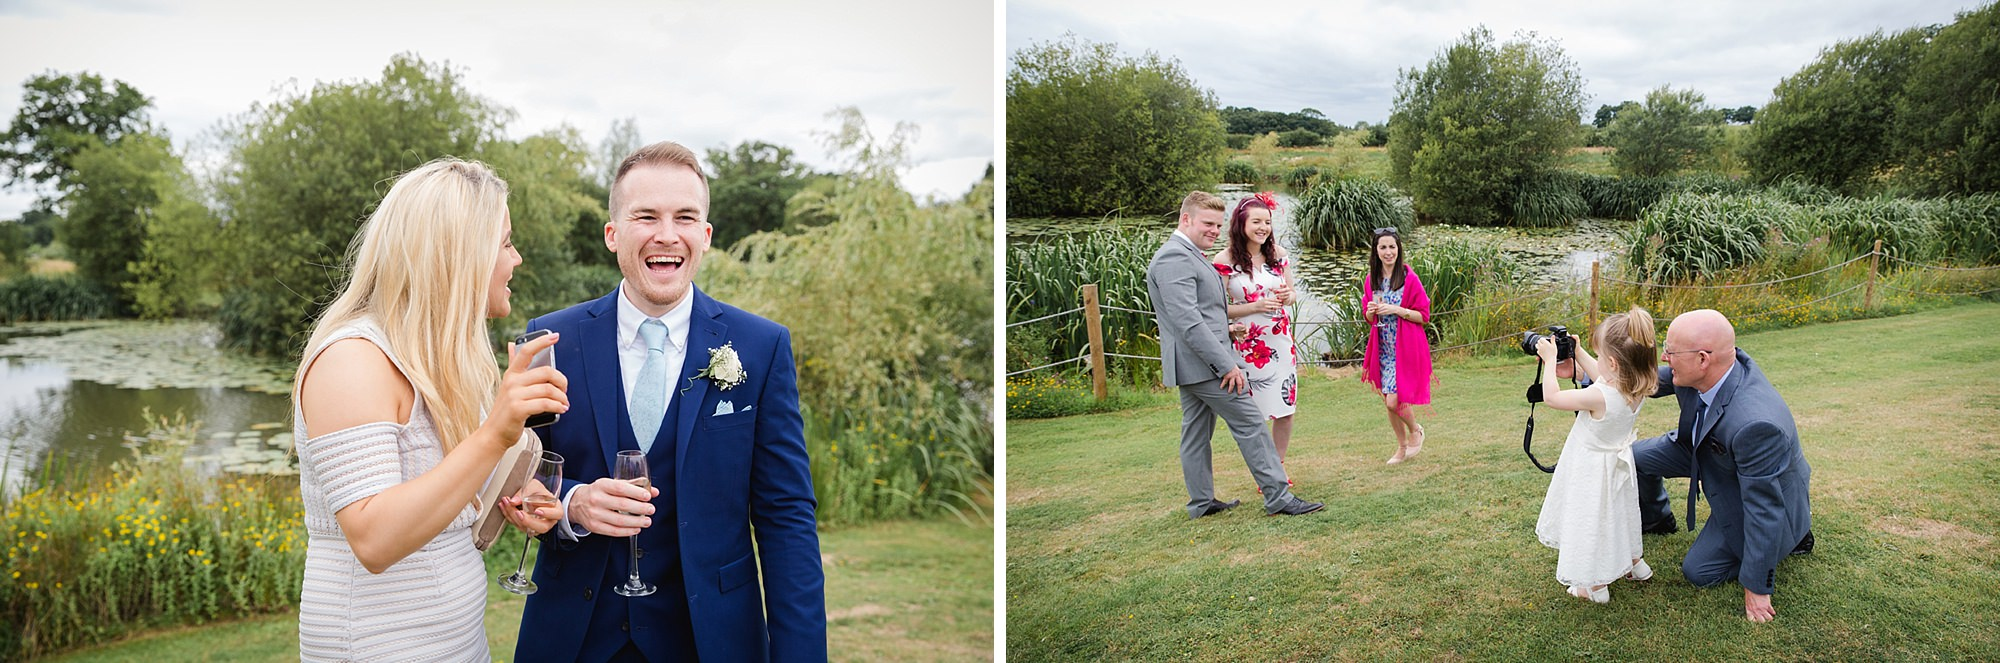 Old Greens Barn Newdigate wedding photography happy guests